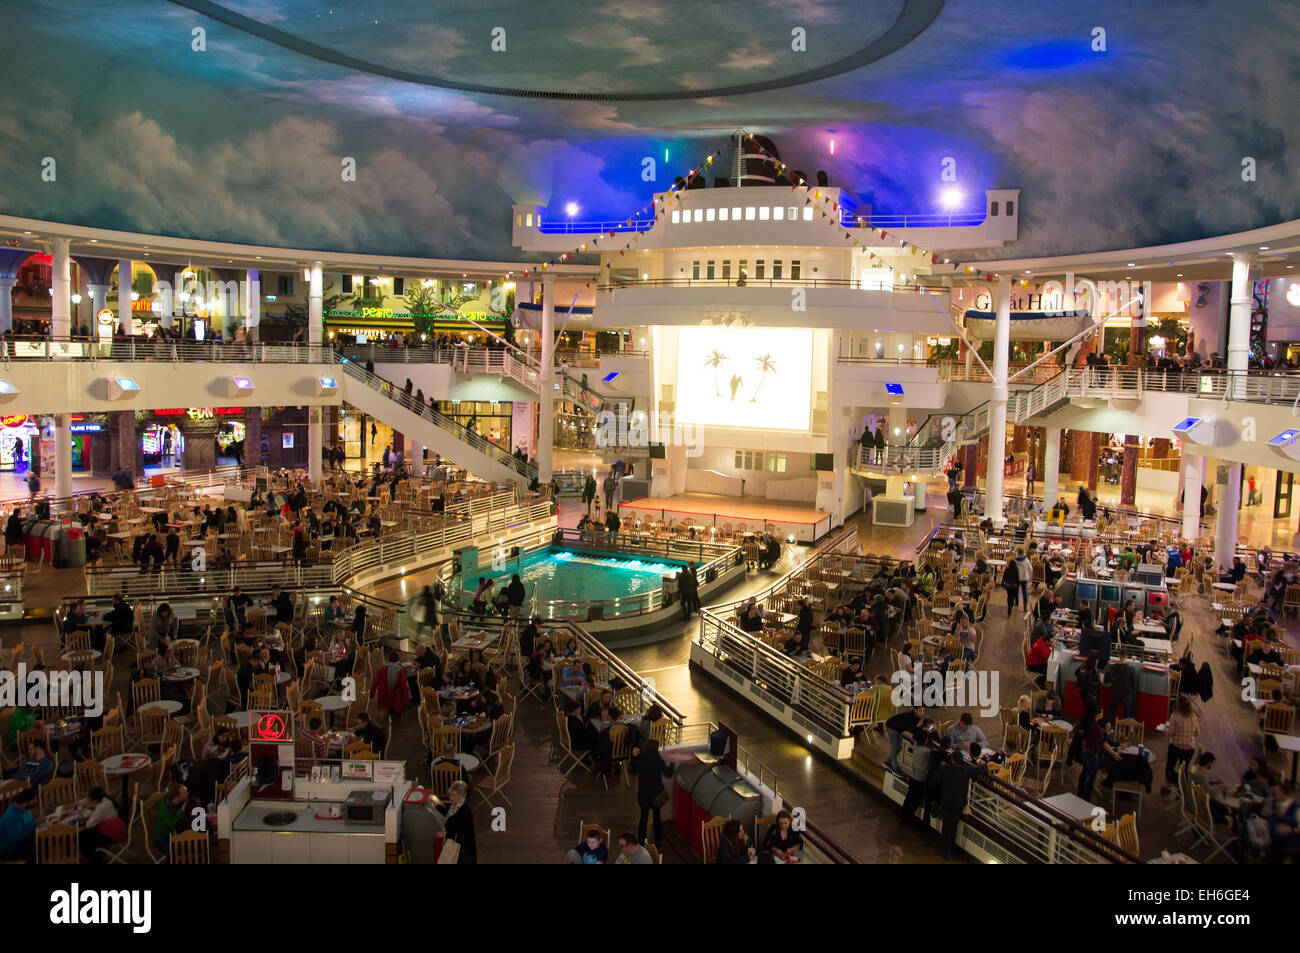 Food Court shaped like a cruise ship Trafford Centre, Manchester, UK - Stock Image